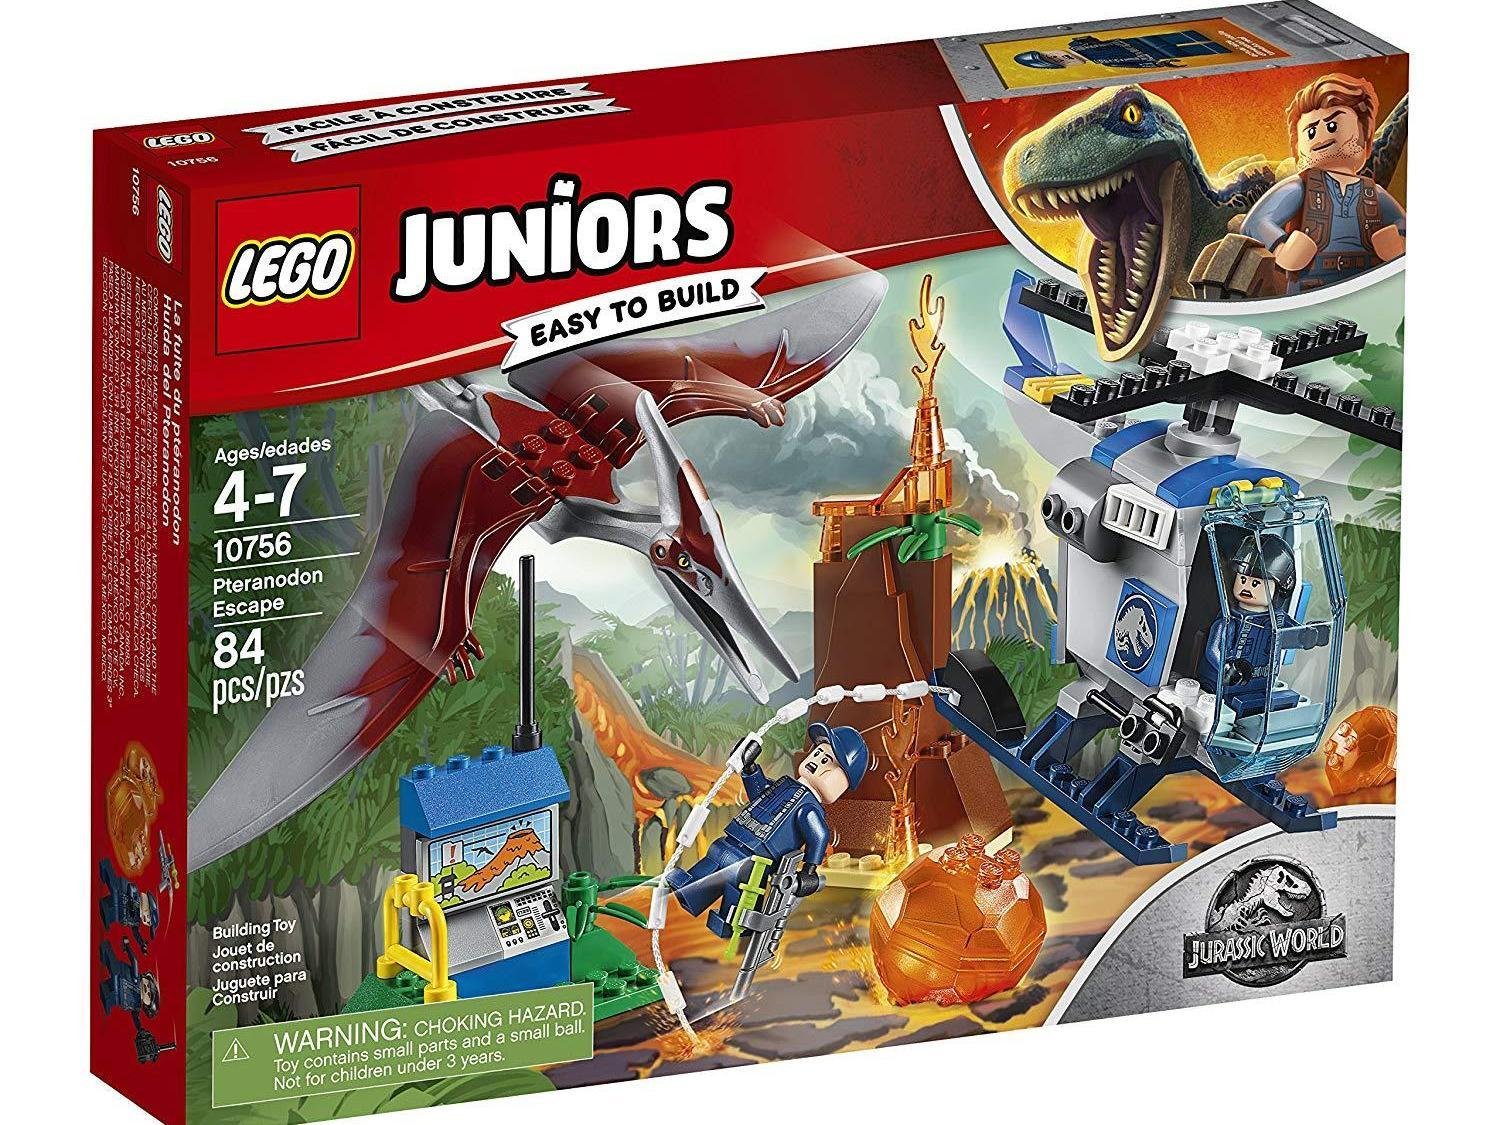 Cars 3 Jackson Storm Jouet Lego Juniors Jurassic World Pteranodon Escape Set Only